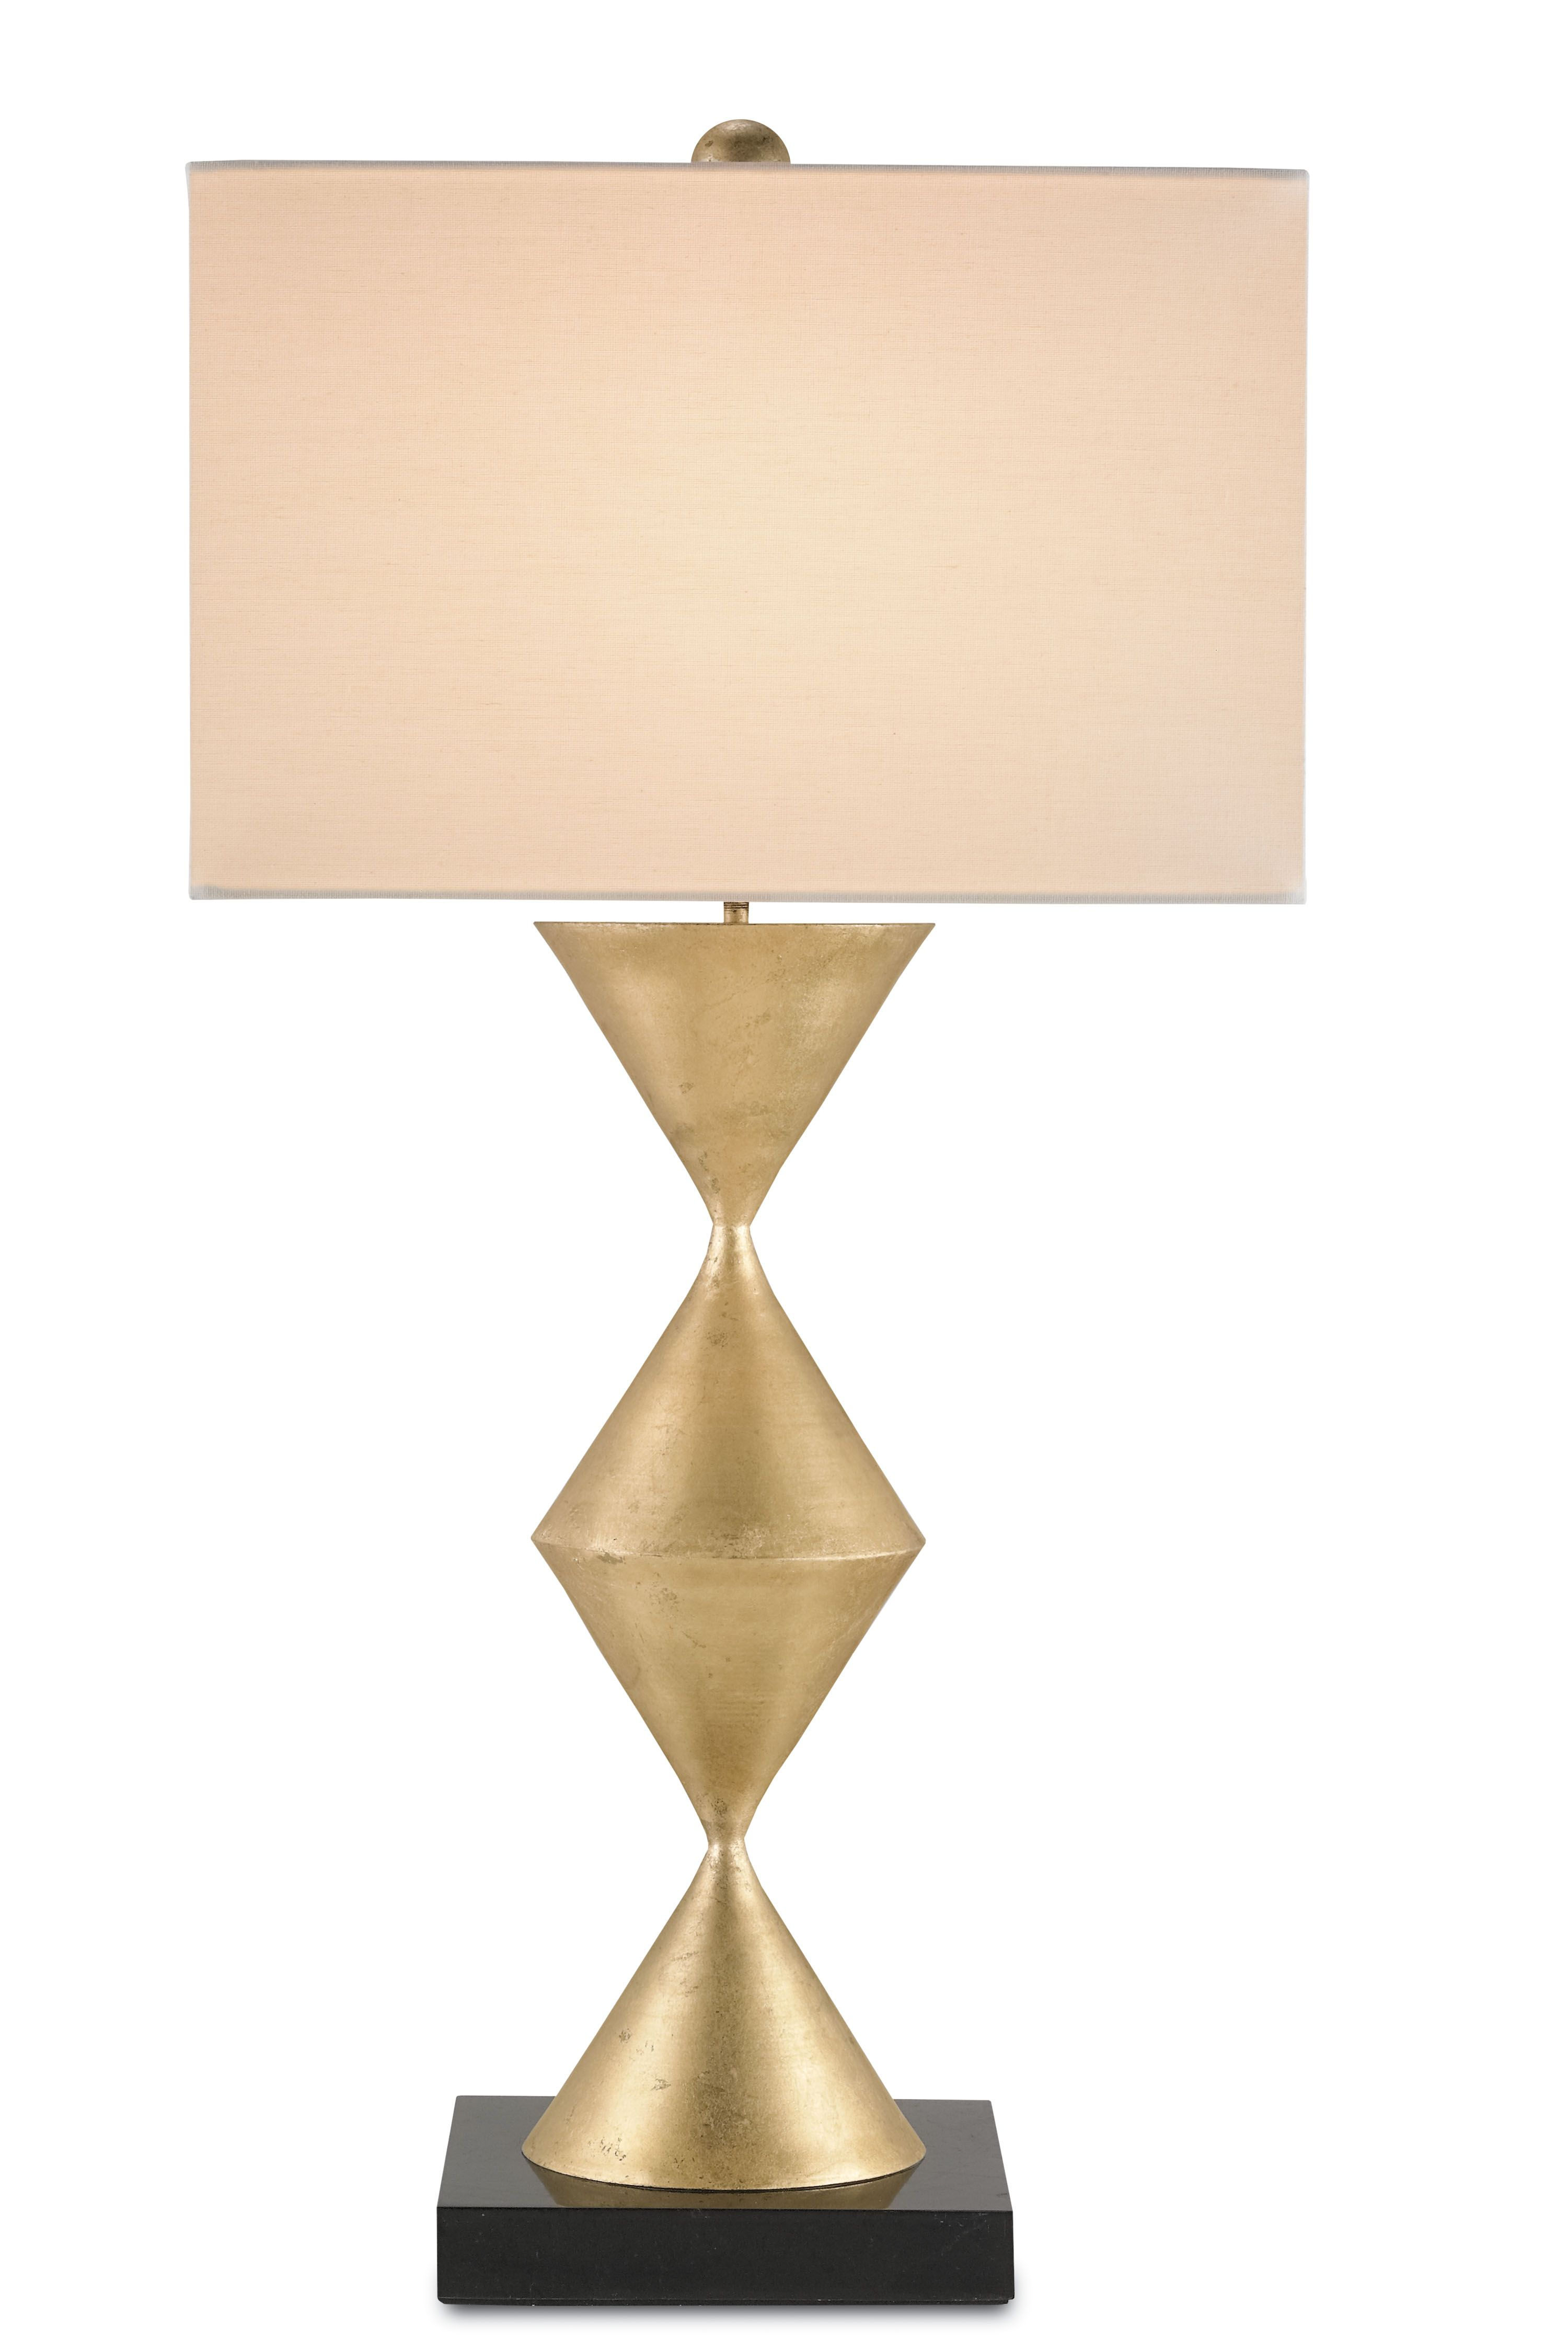 New Carnival Table Lamp By Currey Company Table Lamp Lamp Design Table Lamp Design